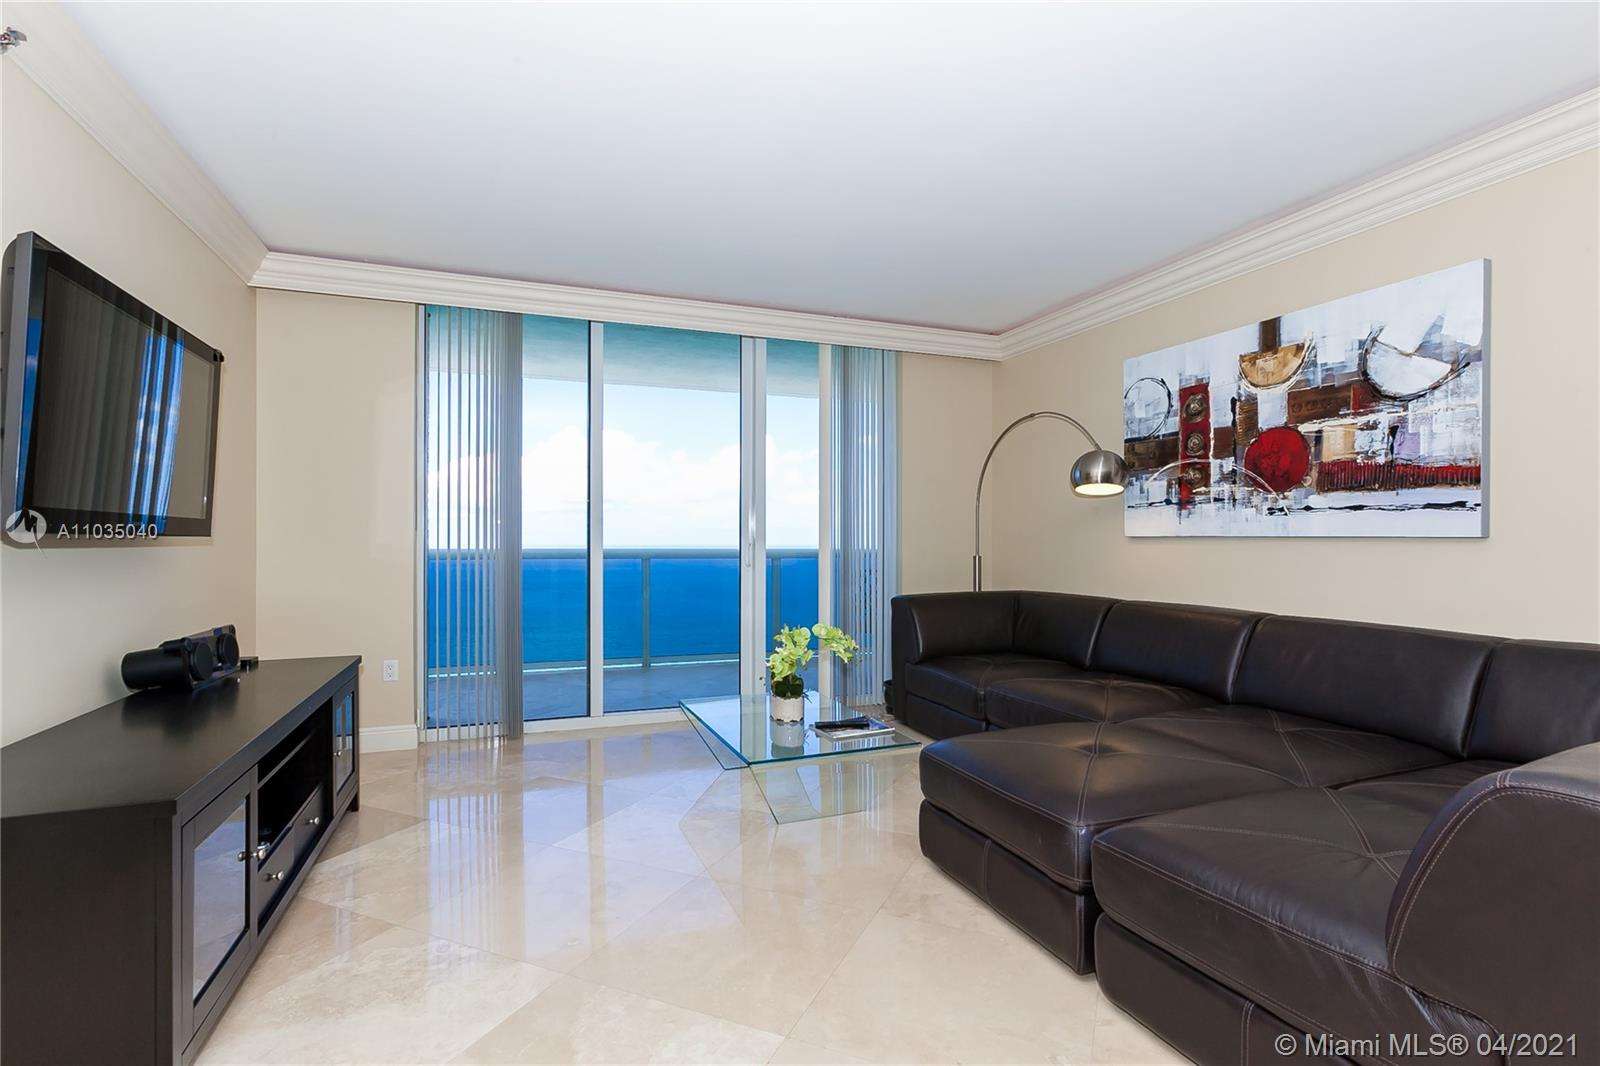 Beach Club III #3803 - 1800 S OCEAN DR #3803, Hallandale Beach, FL 33009